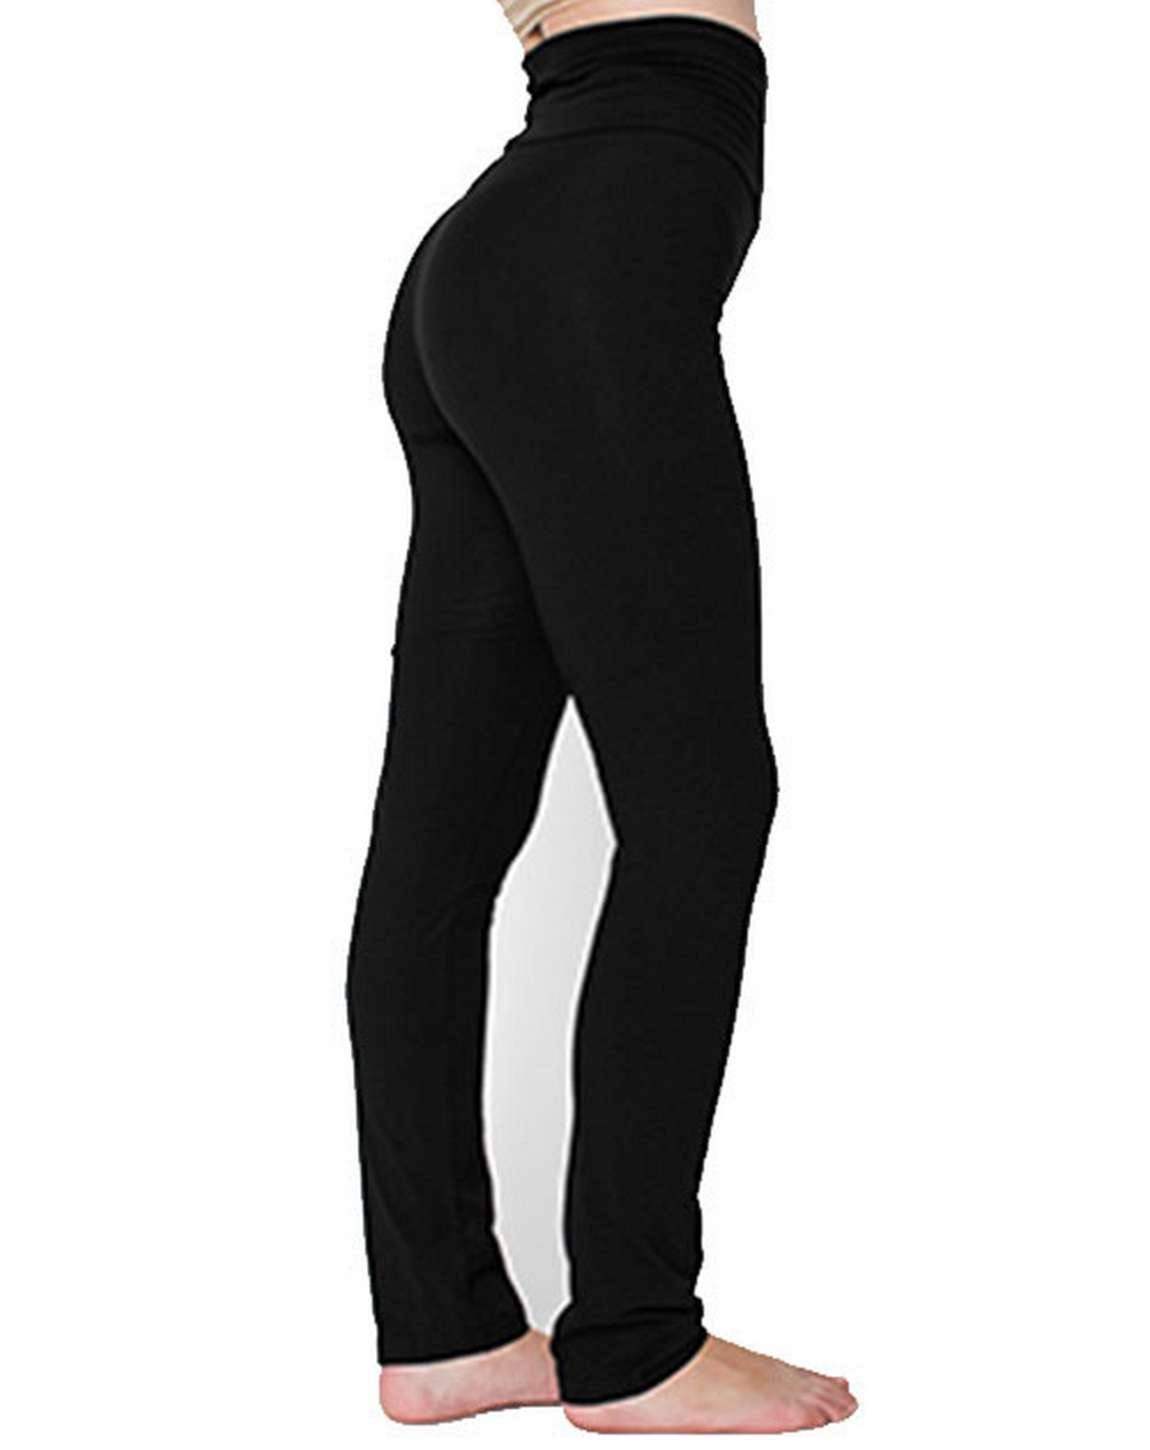 American Apparel 8375W Ladies Cotton Spandex Yoga Pant